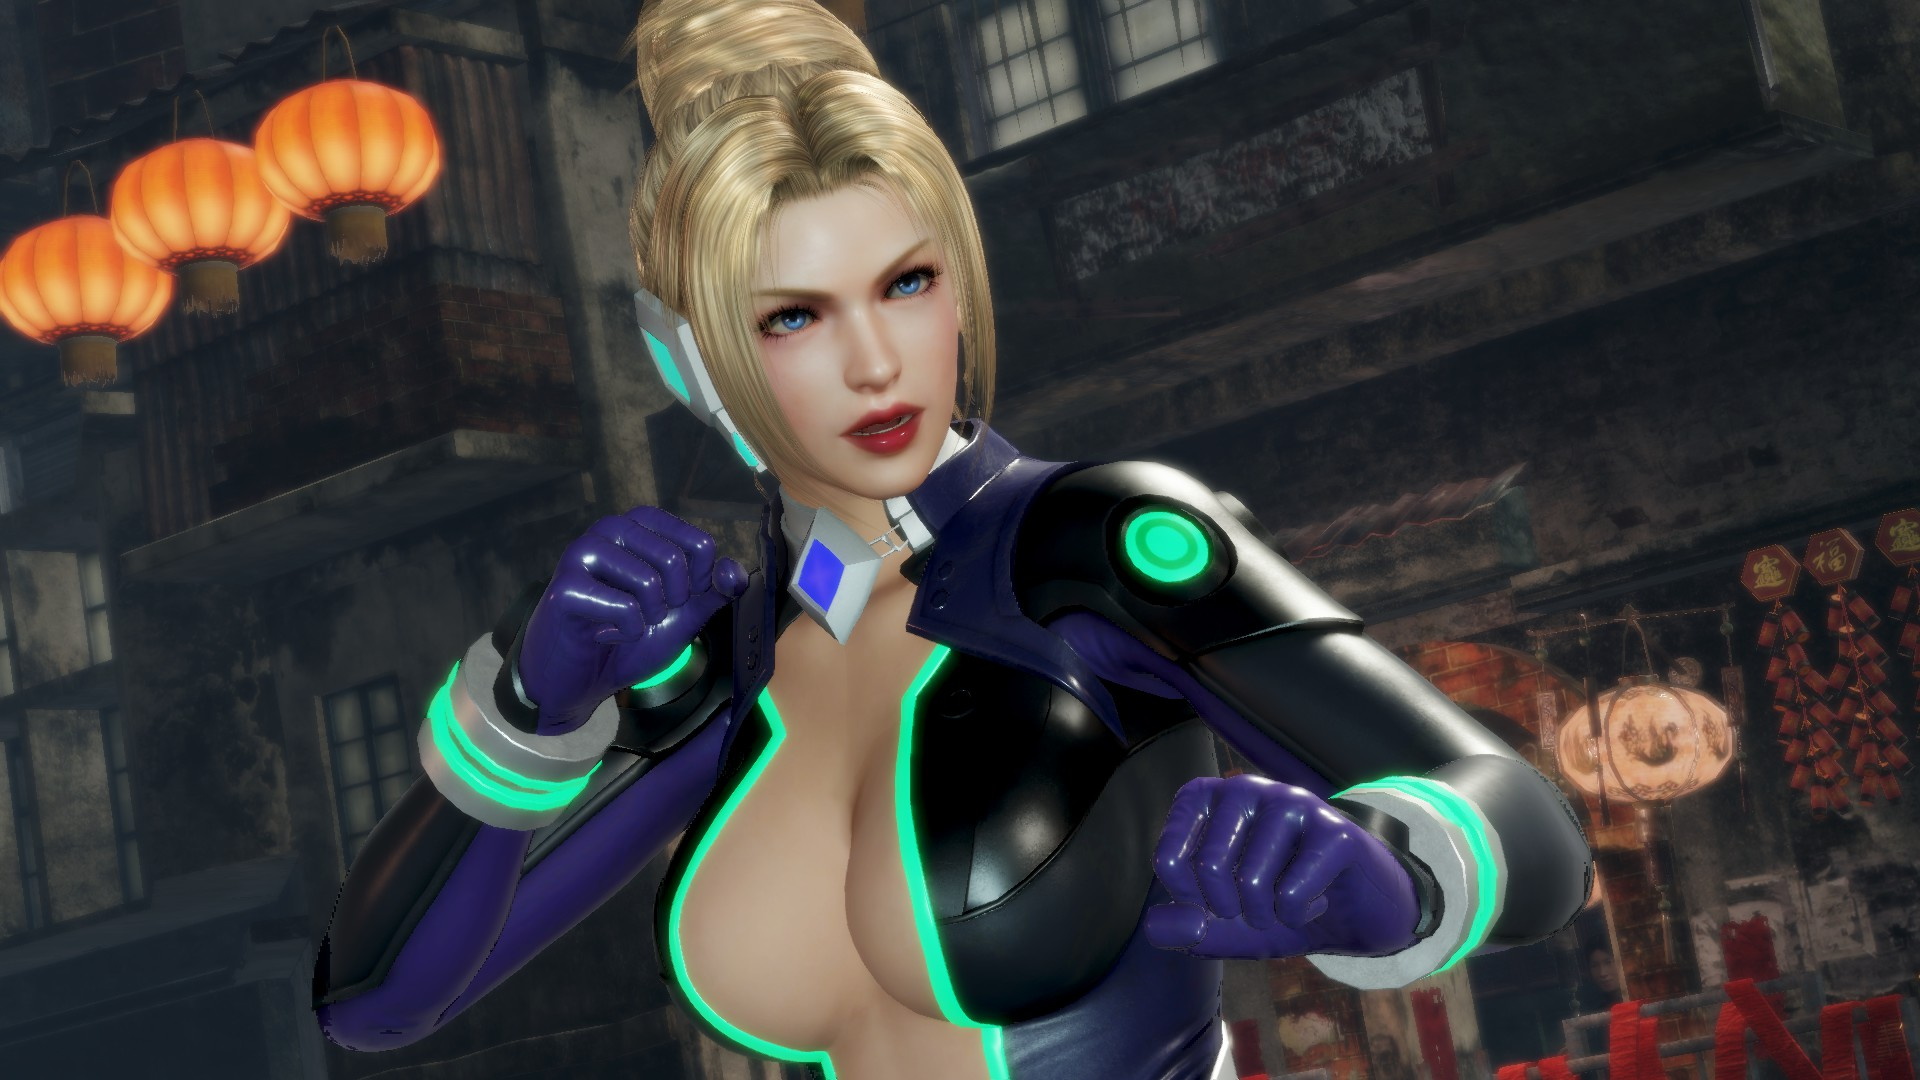 838380_screenshots_20200120224541_1.jpg - Dead or Alive 6